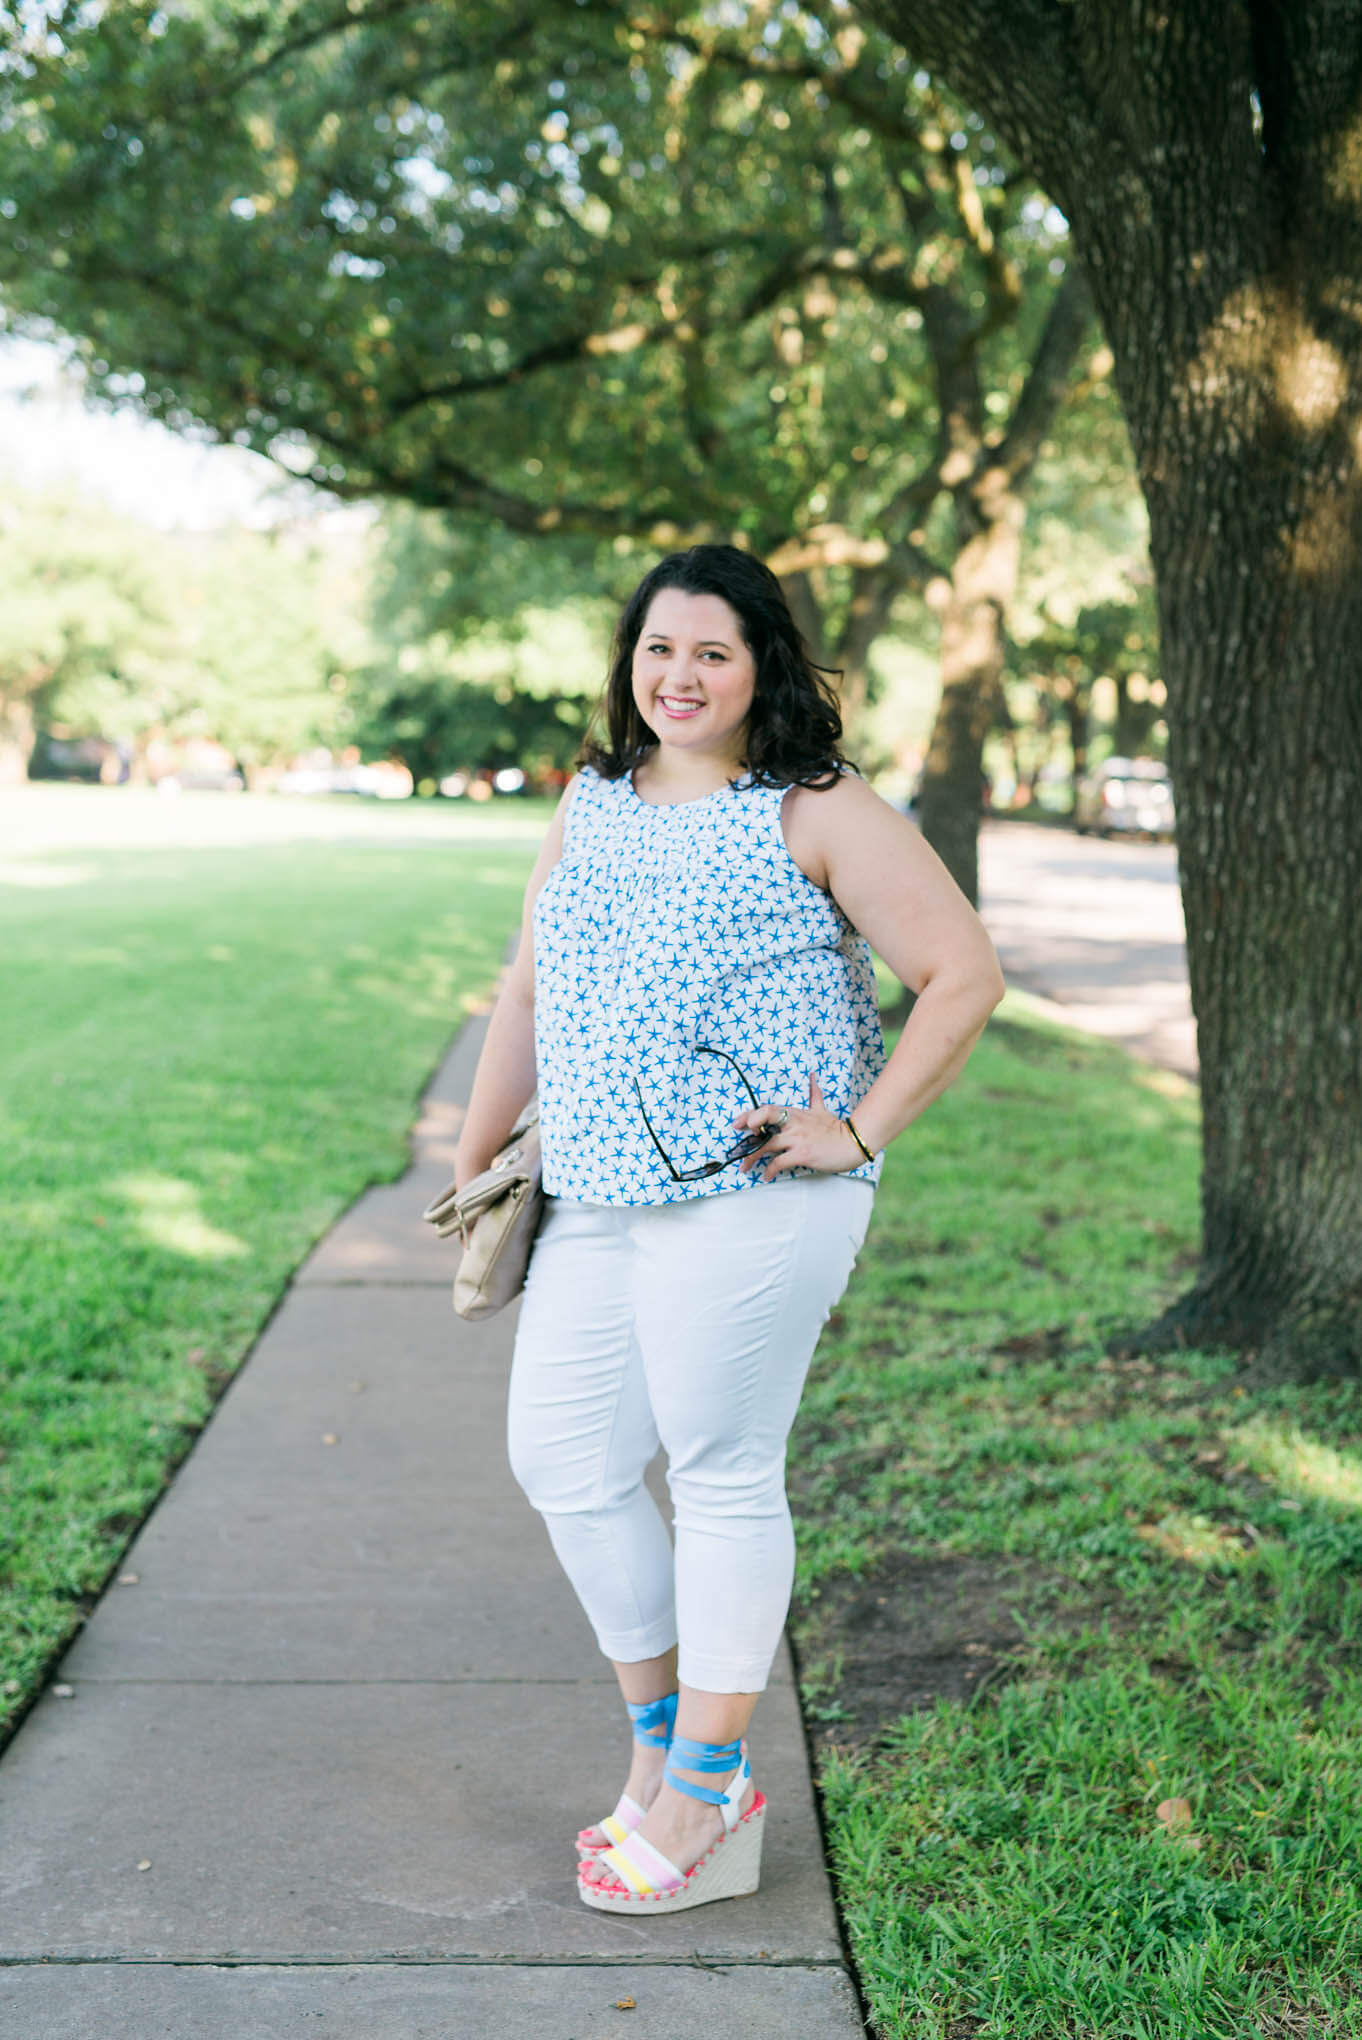 Kate Spade Summer Fun | Something Gold, Something Blue curvy style blog by Emily Bastedo | Plus Size Fashion, Summer fashion, What to wear in the summer, Kate Spade wedges, Melissa McCarthy Seven white capris, Elaine Turner purse, Chanel sunglasses